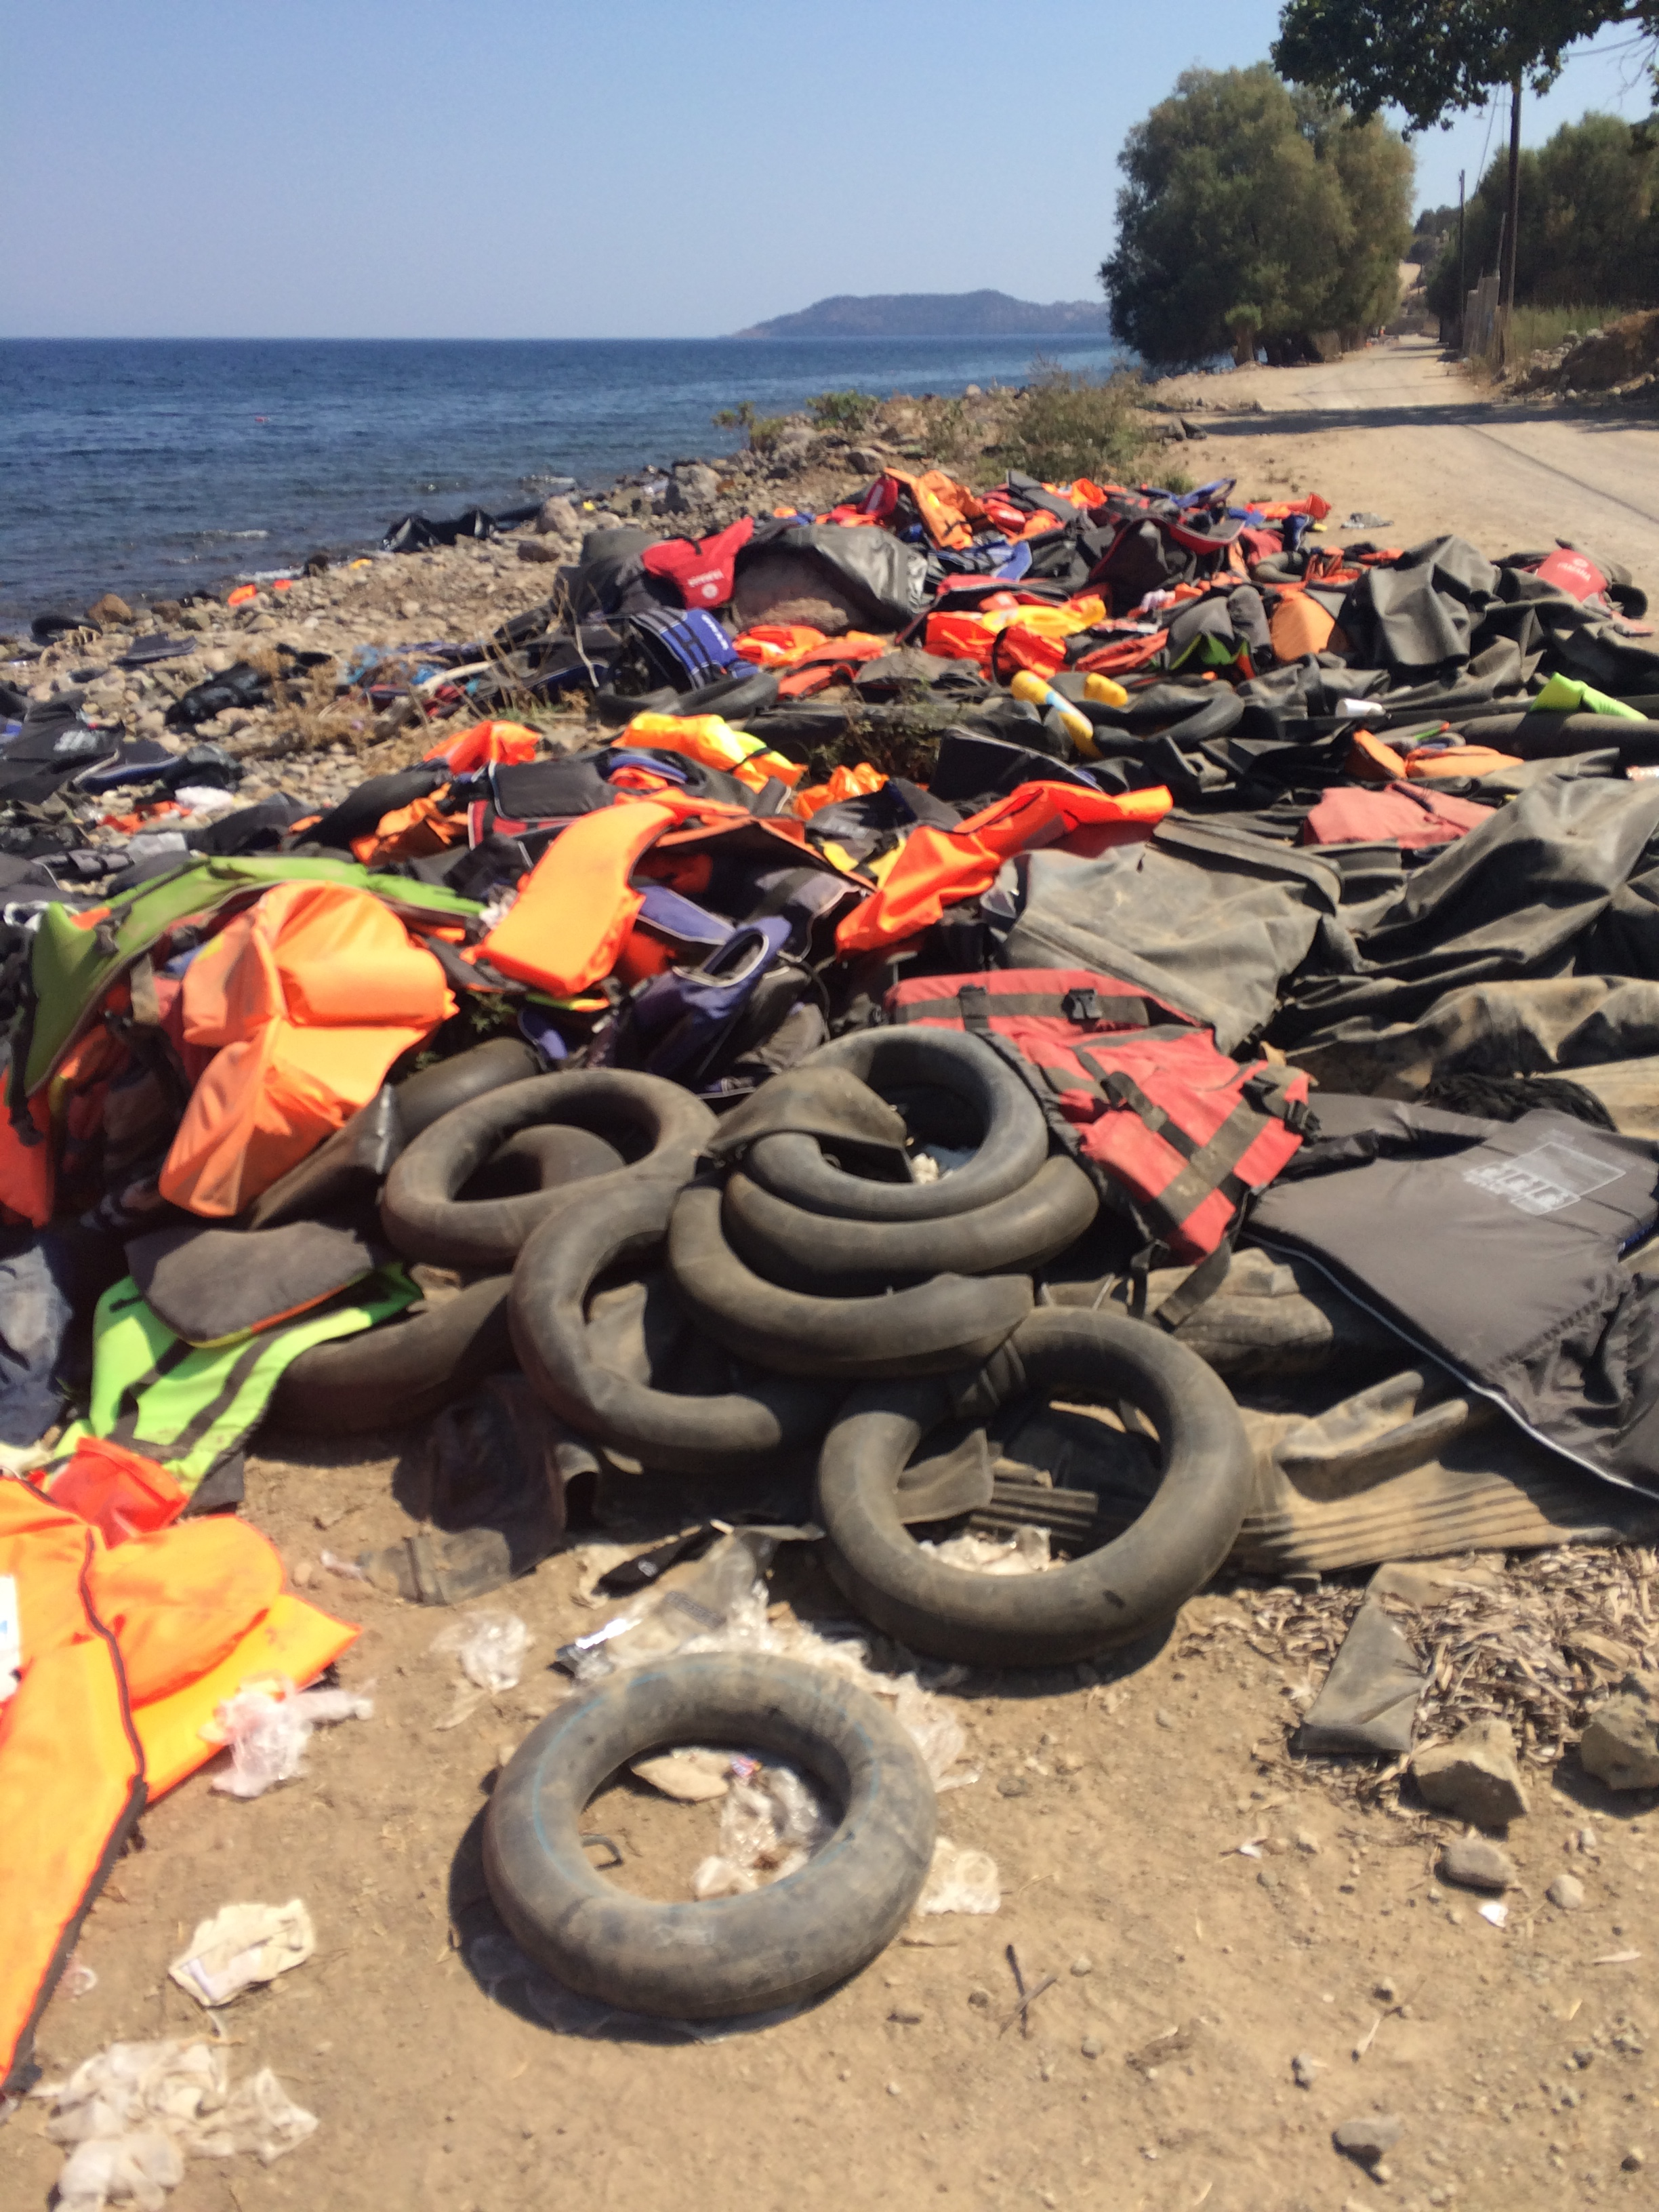 What is being left behind on the beaches. Most of the water sports life jackets & proper life jackets are brand new. Inner tires are being sold to the refugees as life preservers - horrifying.